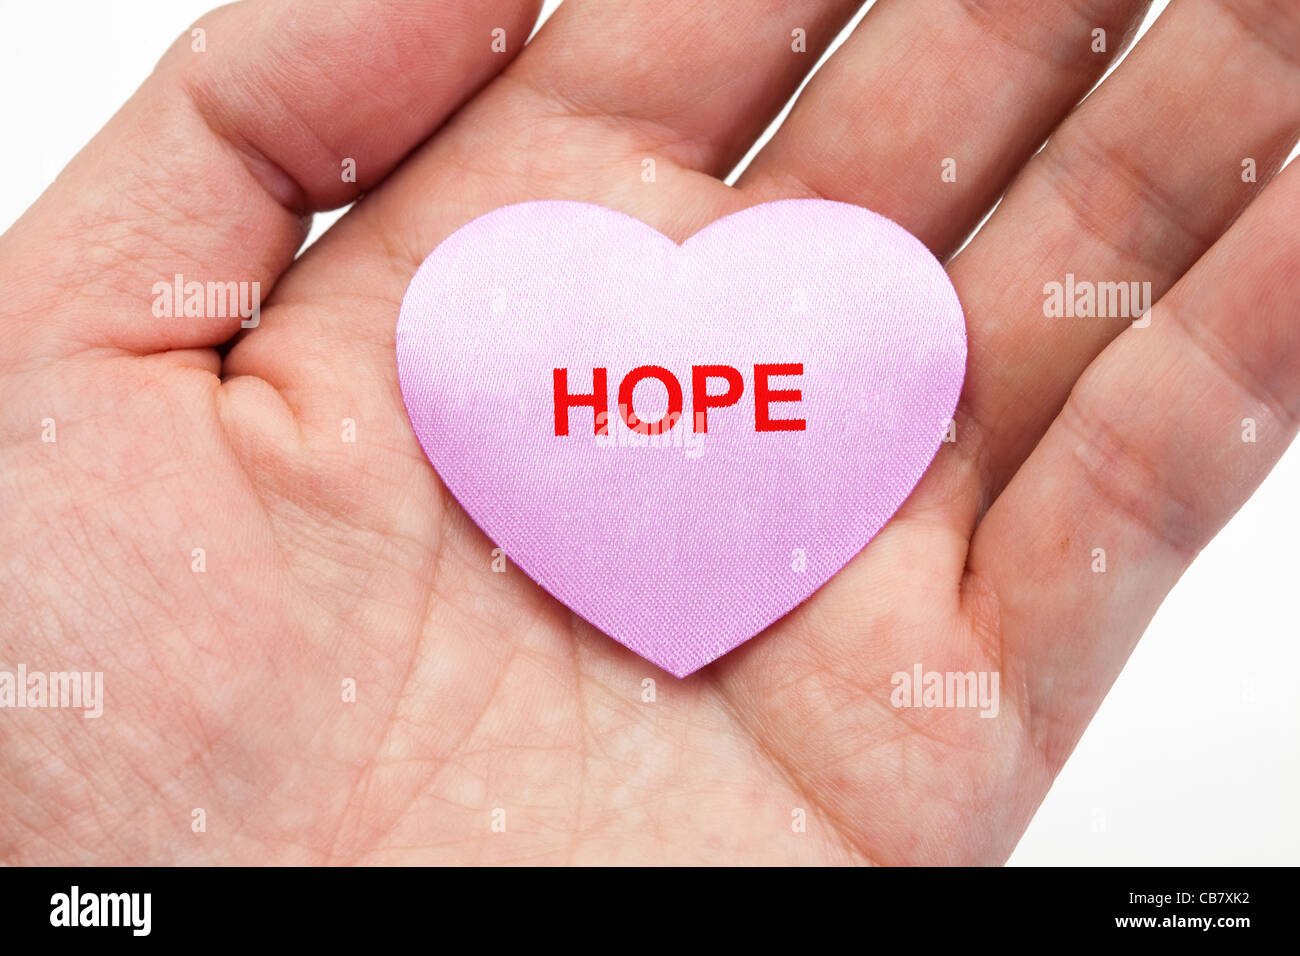 hand holding a Pink heart, concept of hope - Stock Image